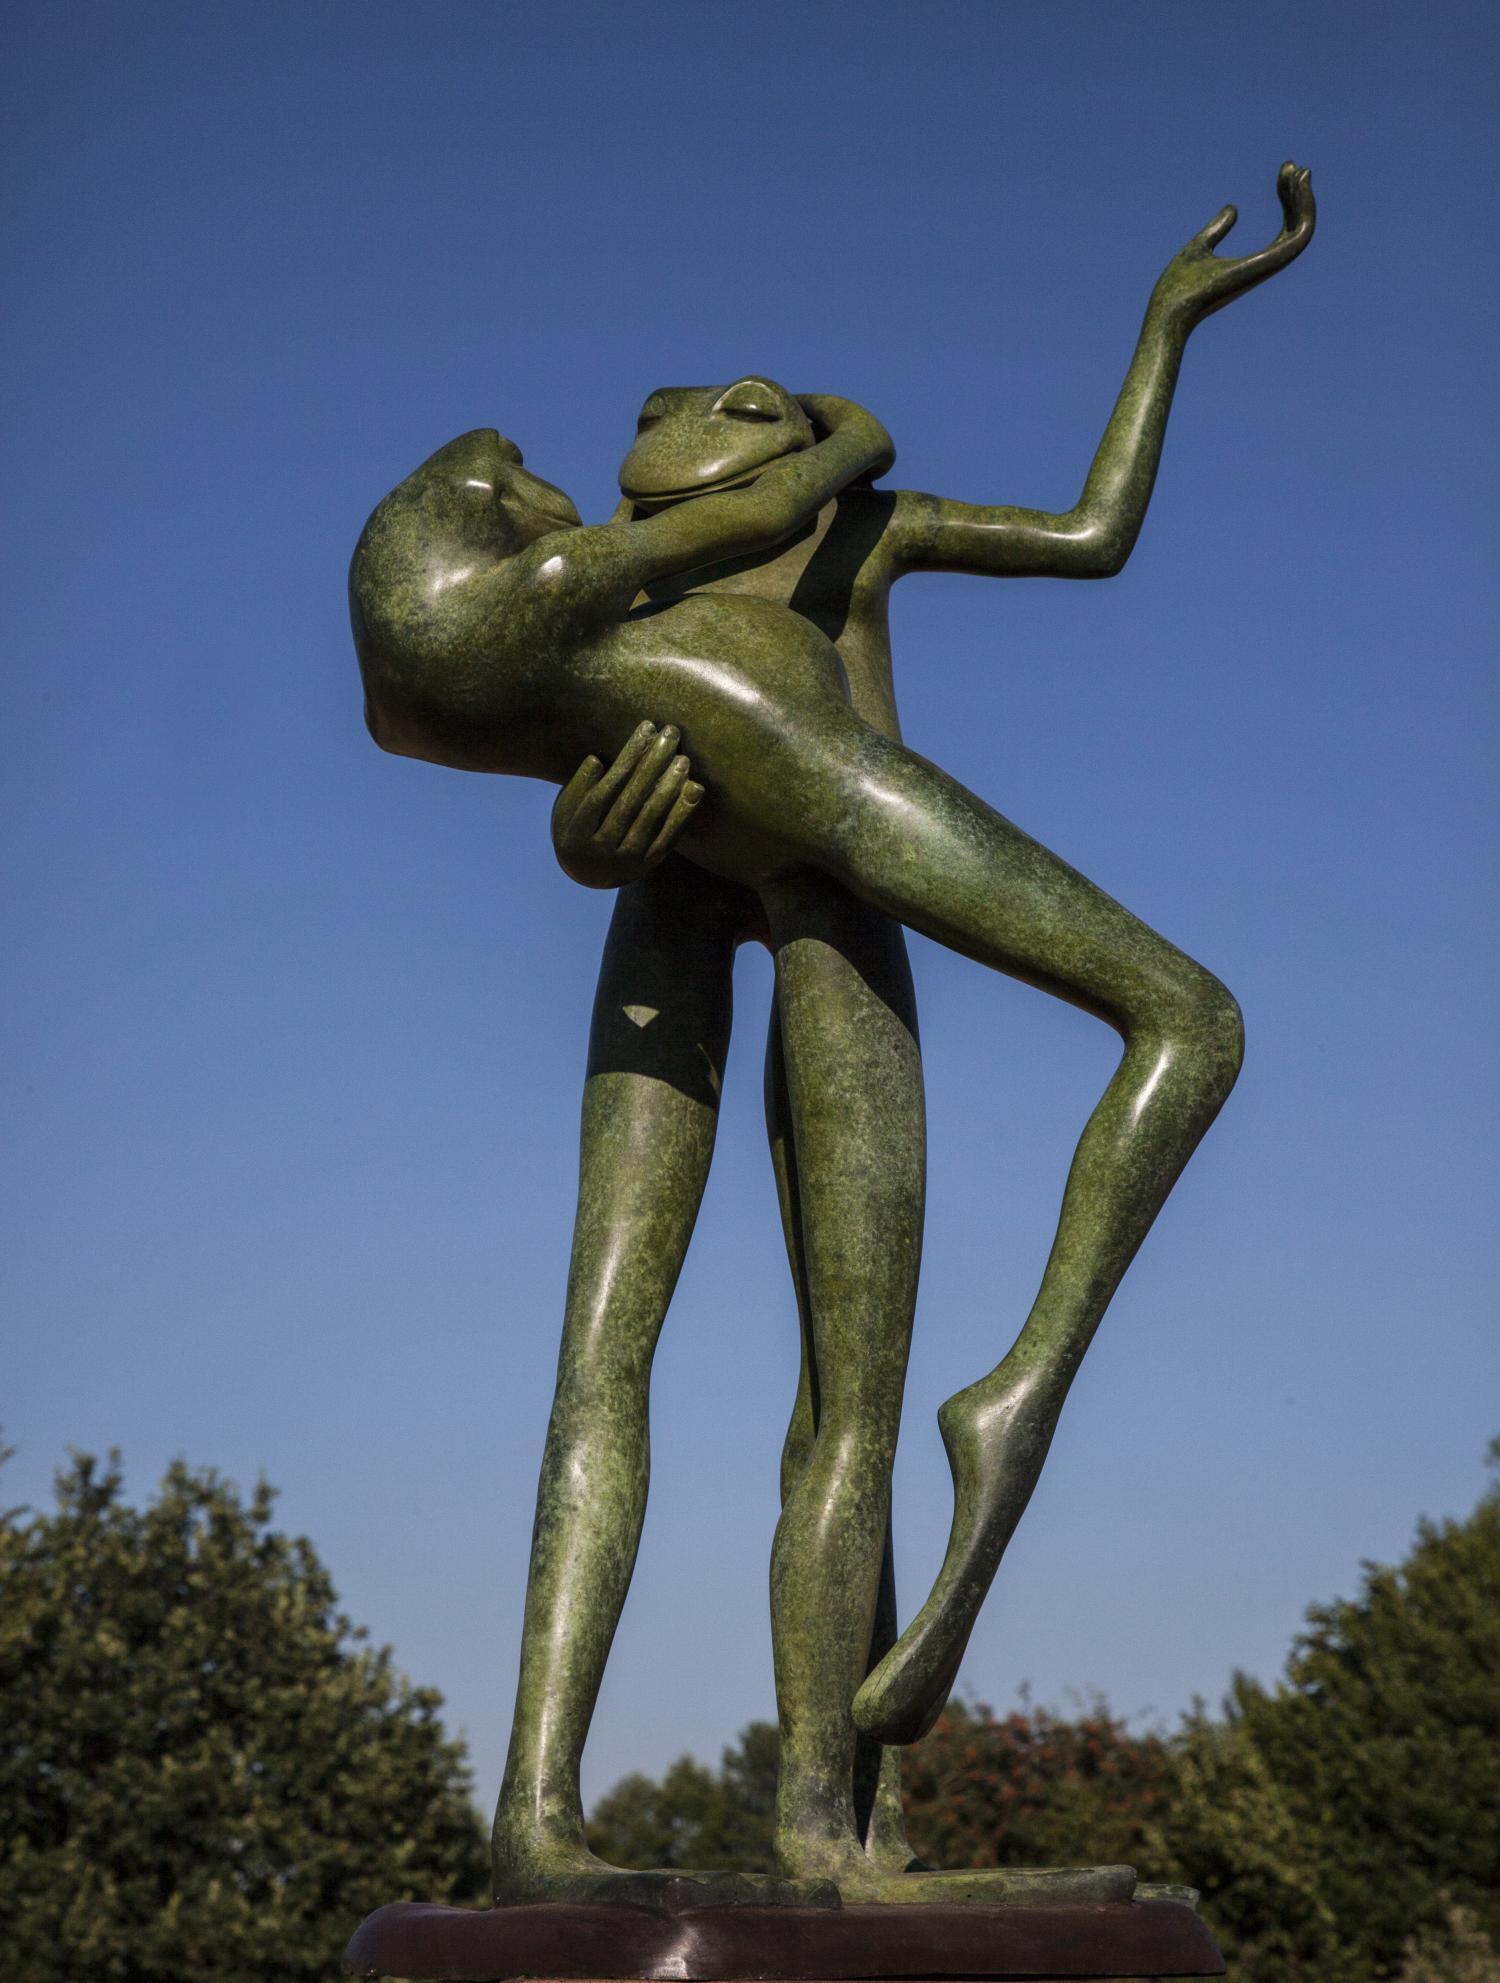 Lot 25 - Sculpture: David Meredith, Large Dancing Frogs, Bronze, 61cm high by 38cm wide by 25cm deep